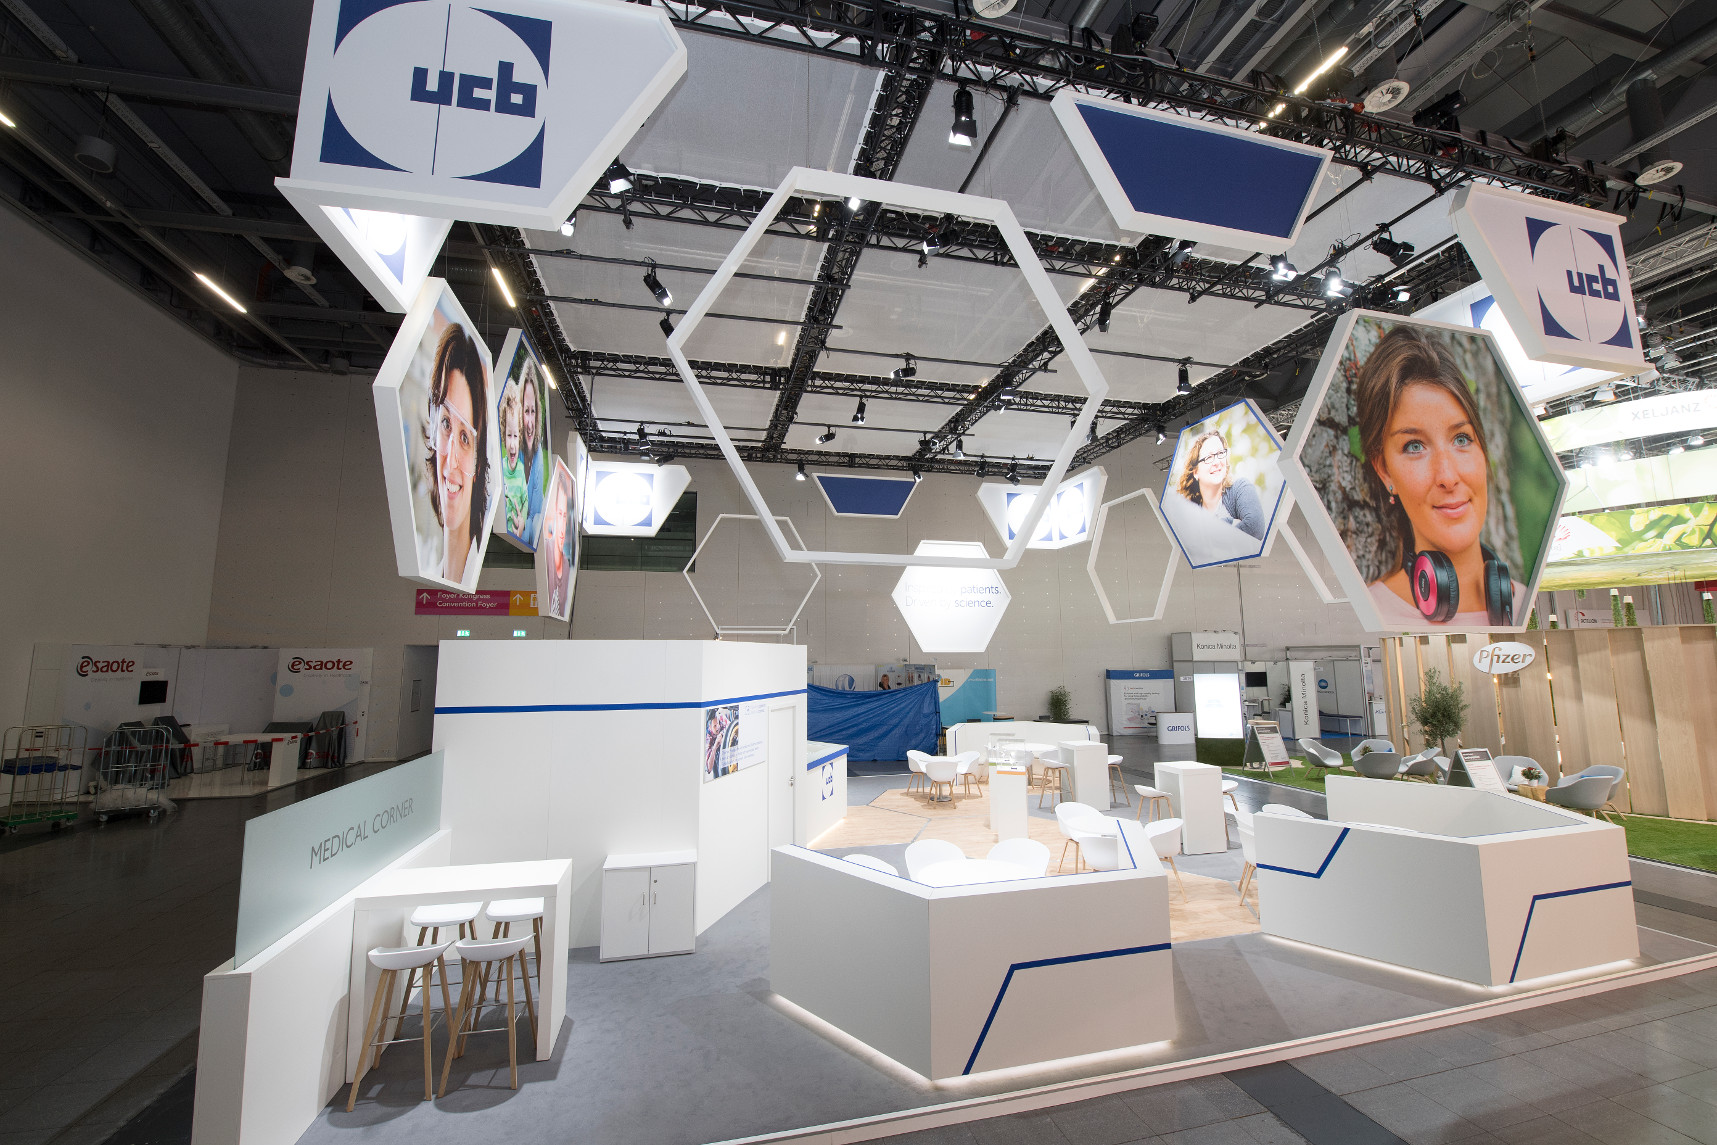 UCB DGRh Messestand 4